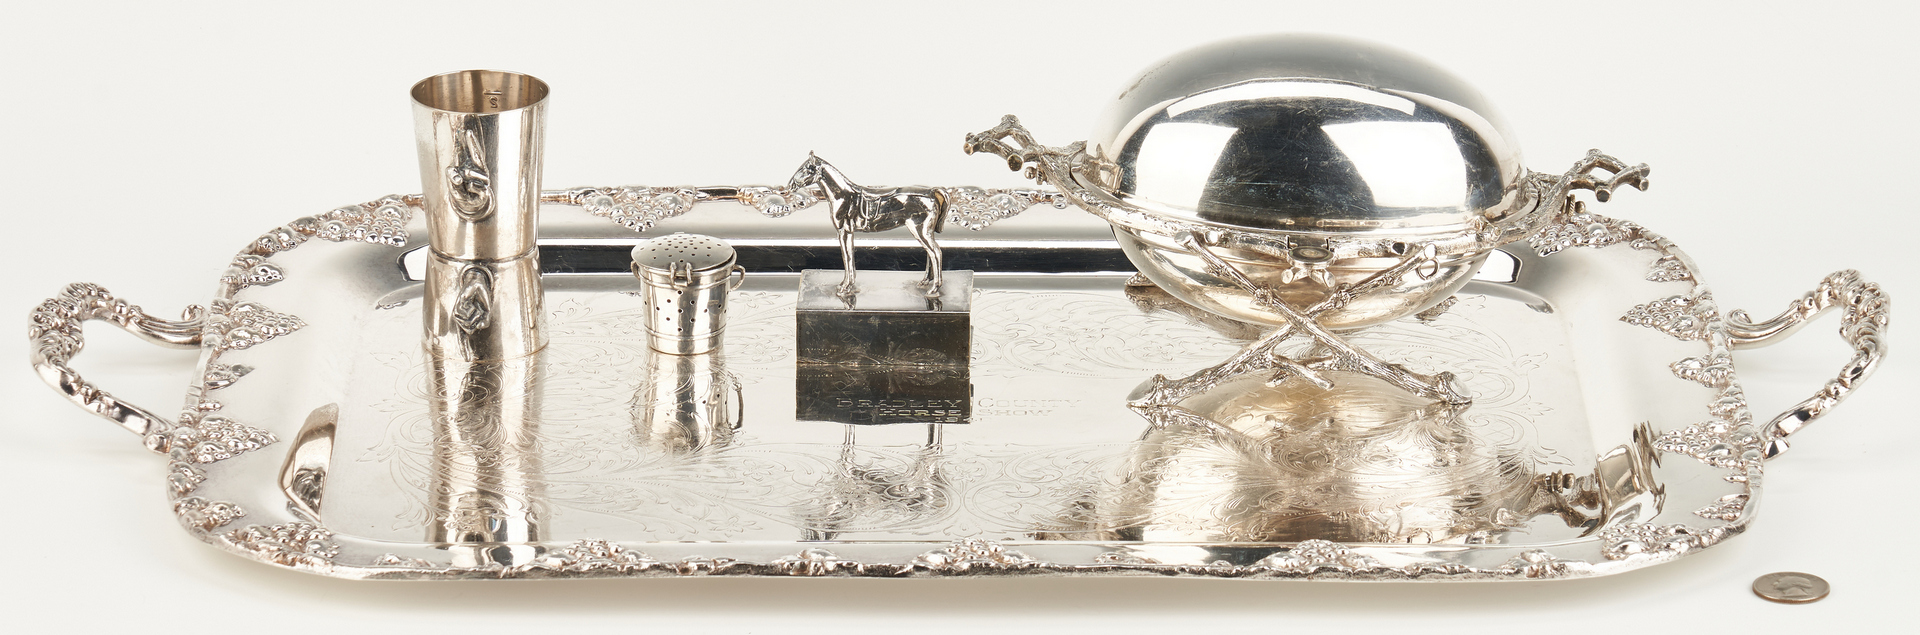 Lot 1059: 5 Silverplated Items incl. Horse Trophy Tray